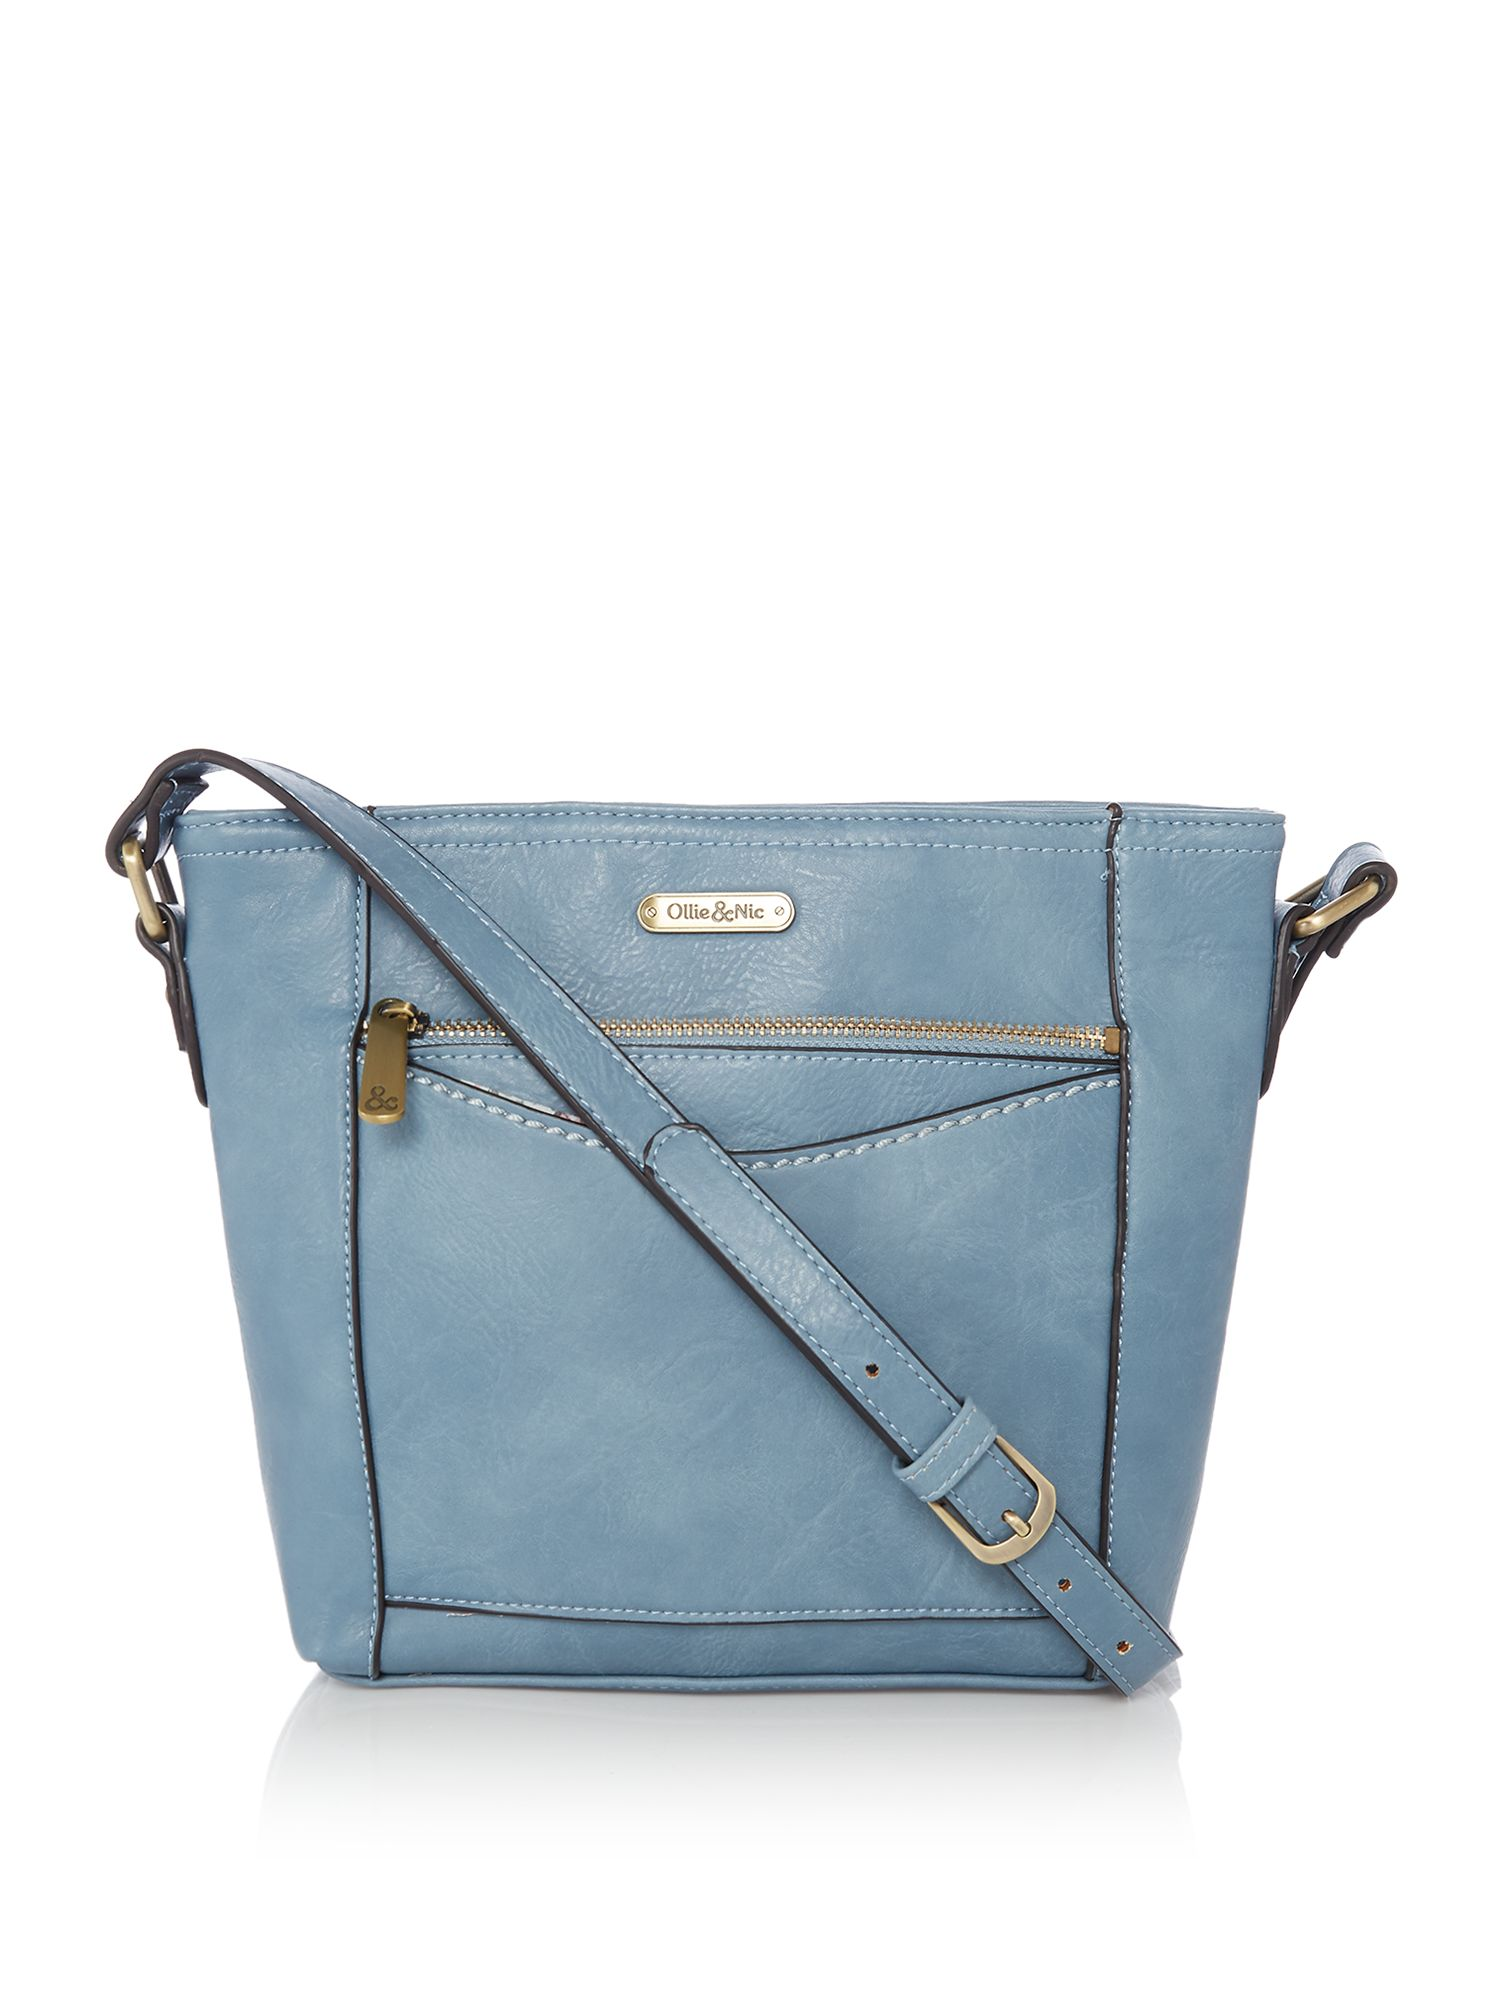 Ollie & Nic Margo crossbody, Blue